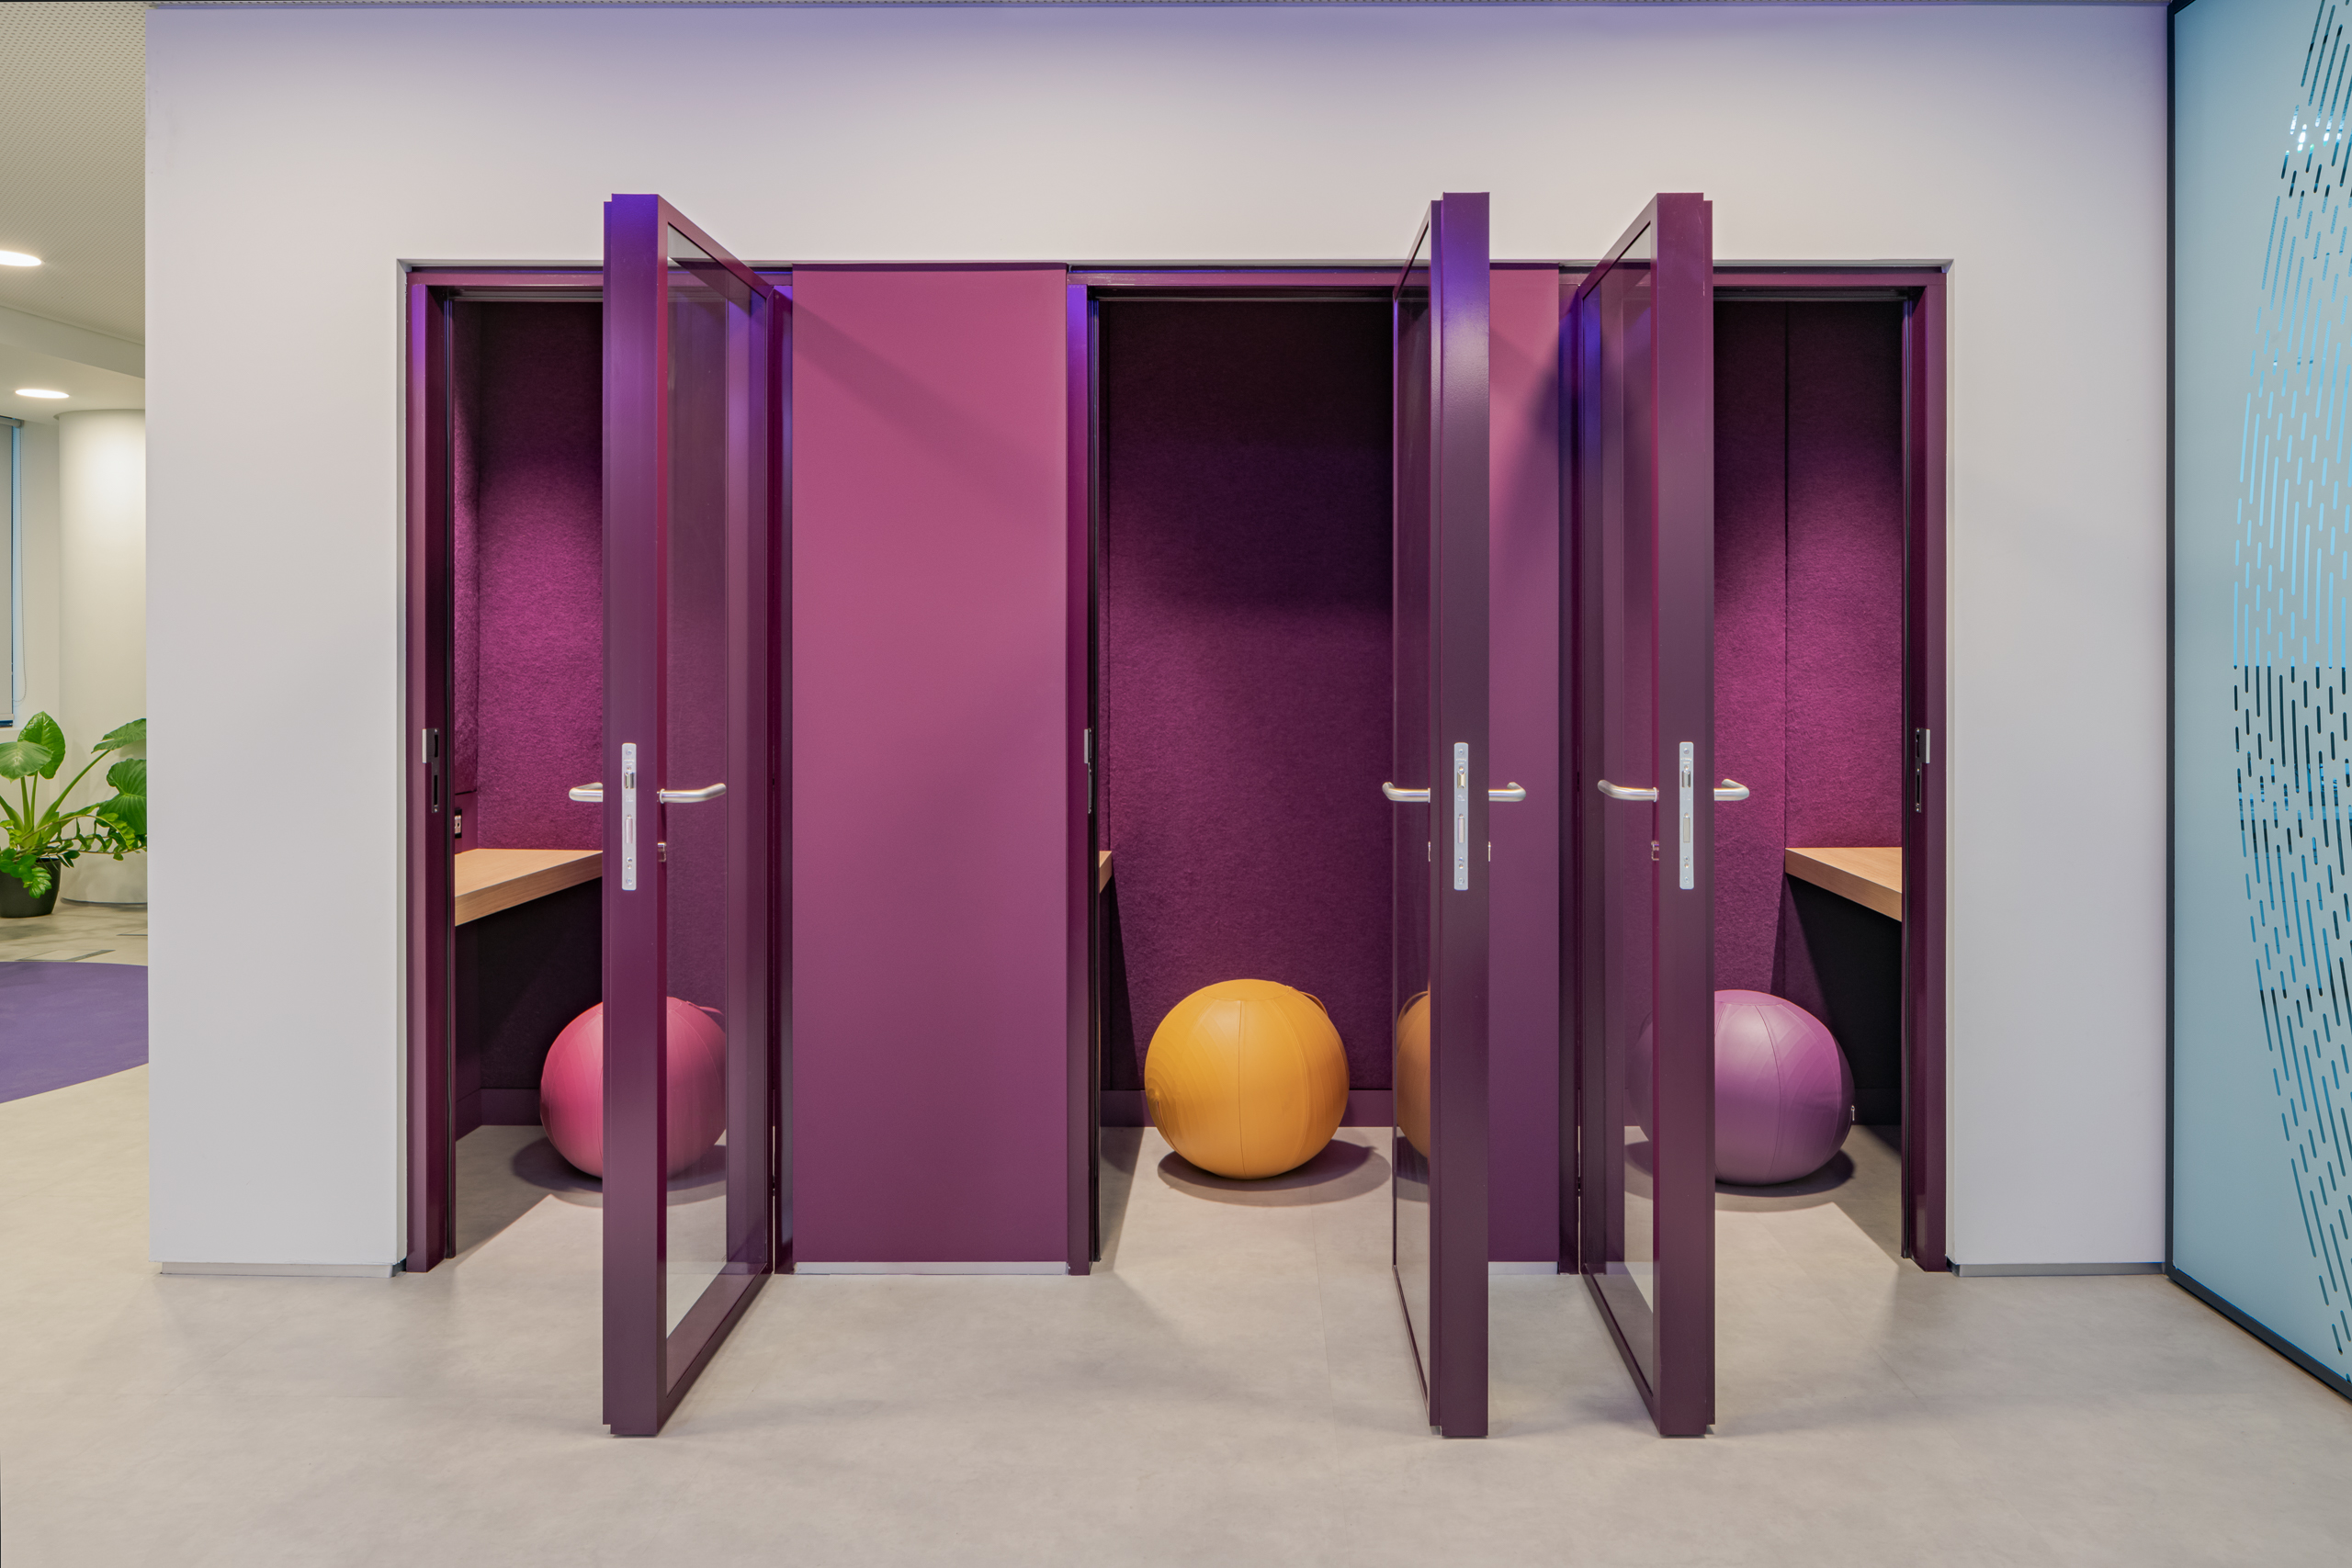 Booth designed by Stavropoulou architects